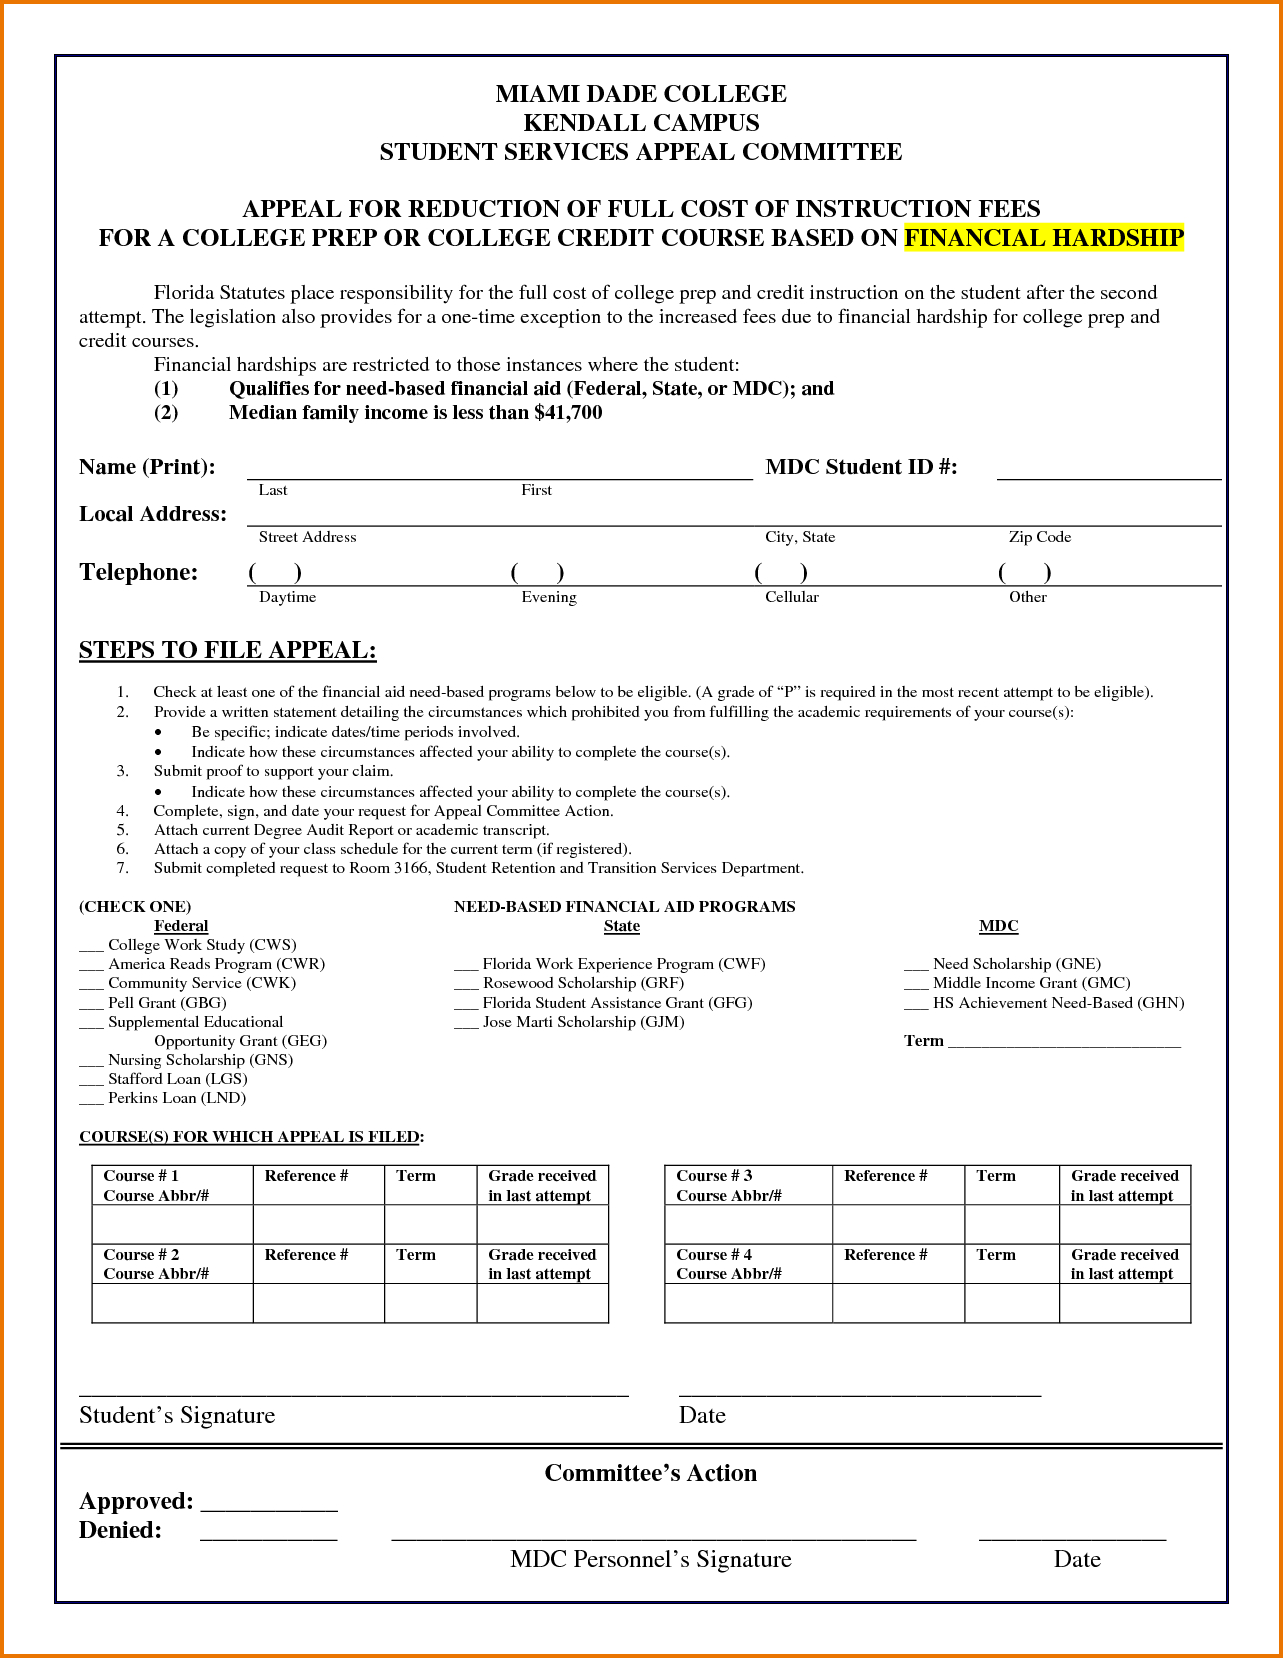 Free Printable Divorce Papers 169645 Davidson County Tn Filing Fees - Free Printable Divorce Papers For Arkansas